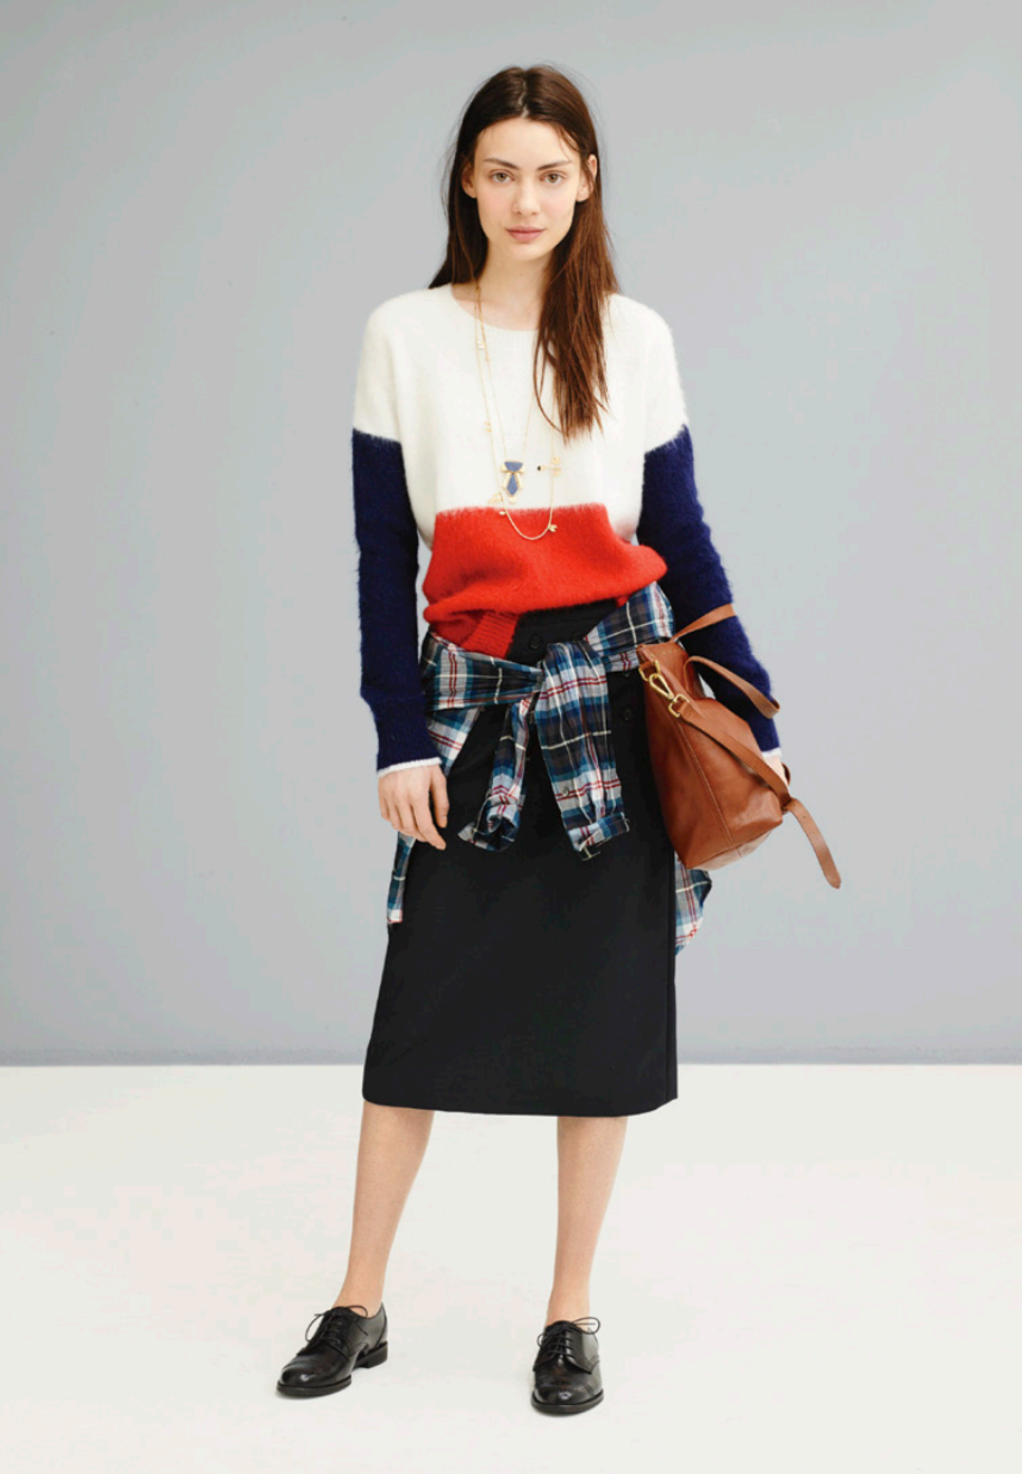 069e28790f8 Exclusive  Check Out Madewell s Fall 2014 Lookbook